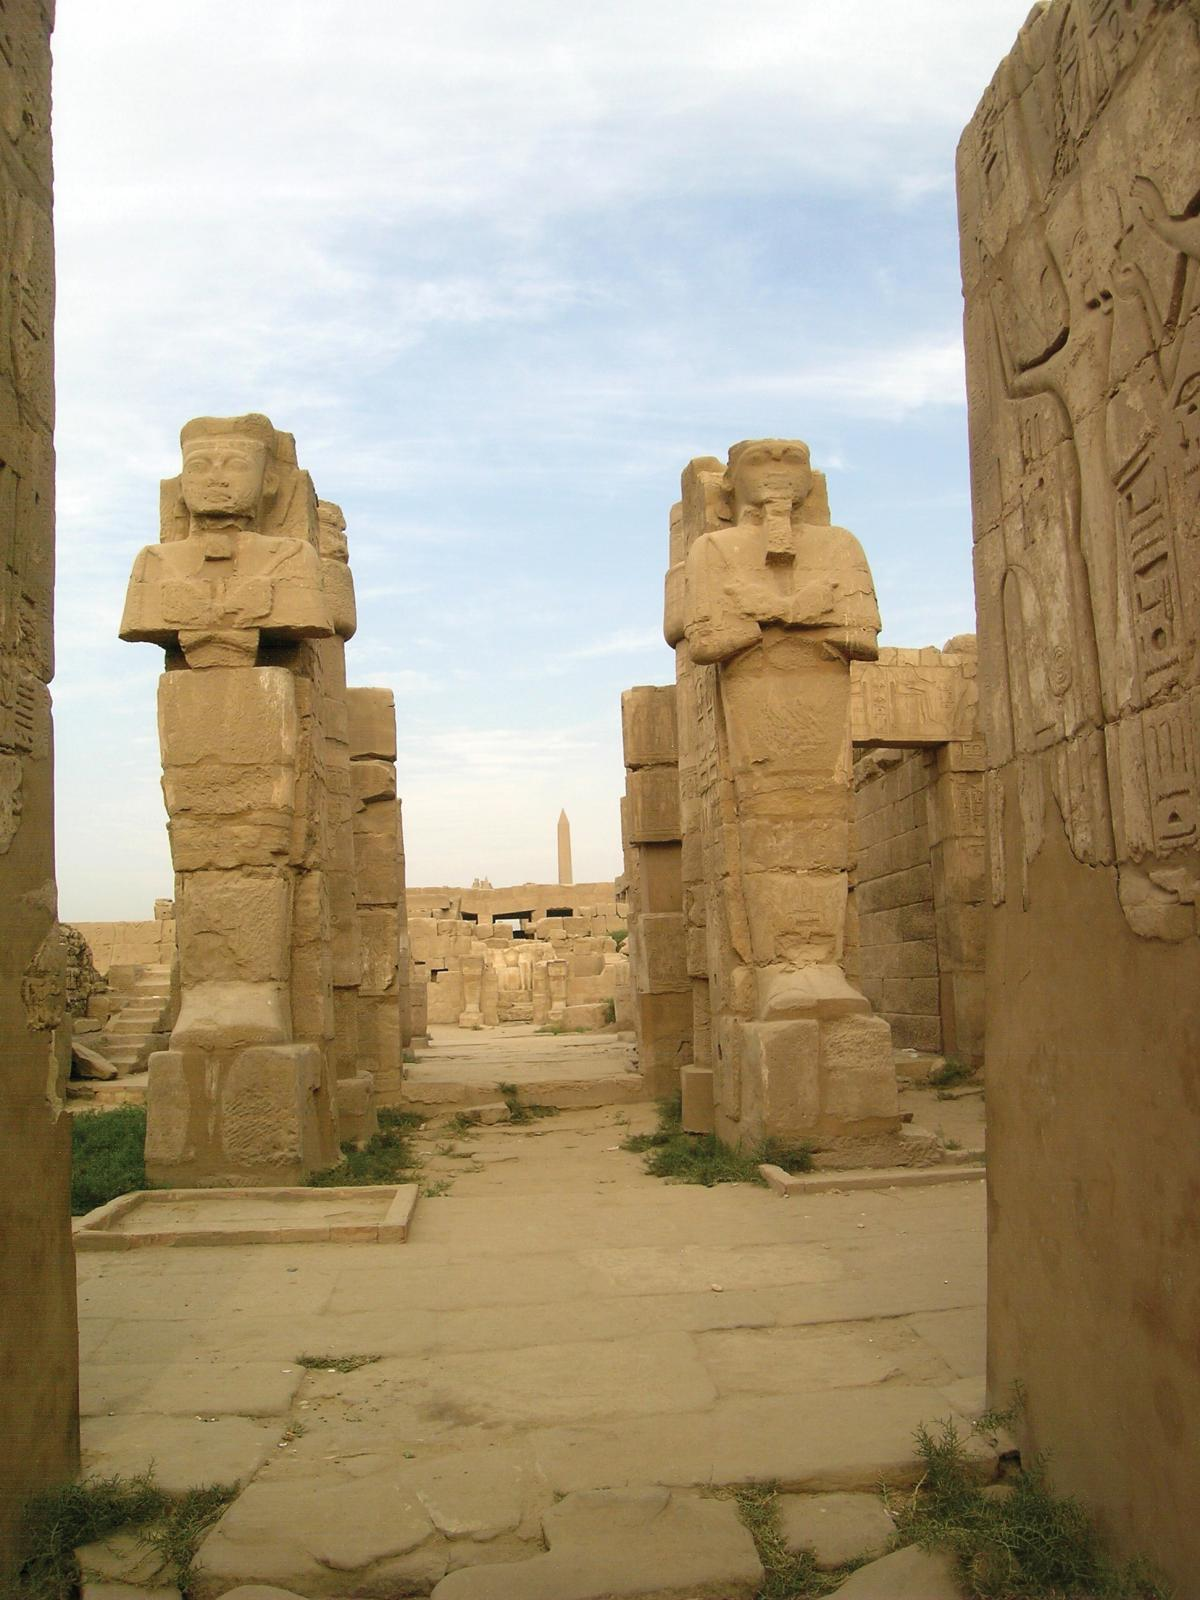 Huge sandstone statues of rulers and gods flank the entrance to a temple, also made of yellow sandstone